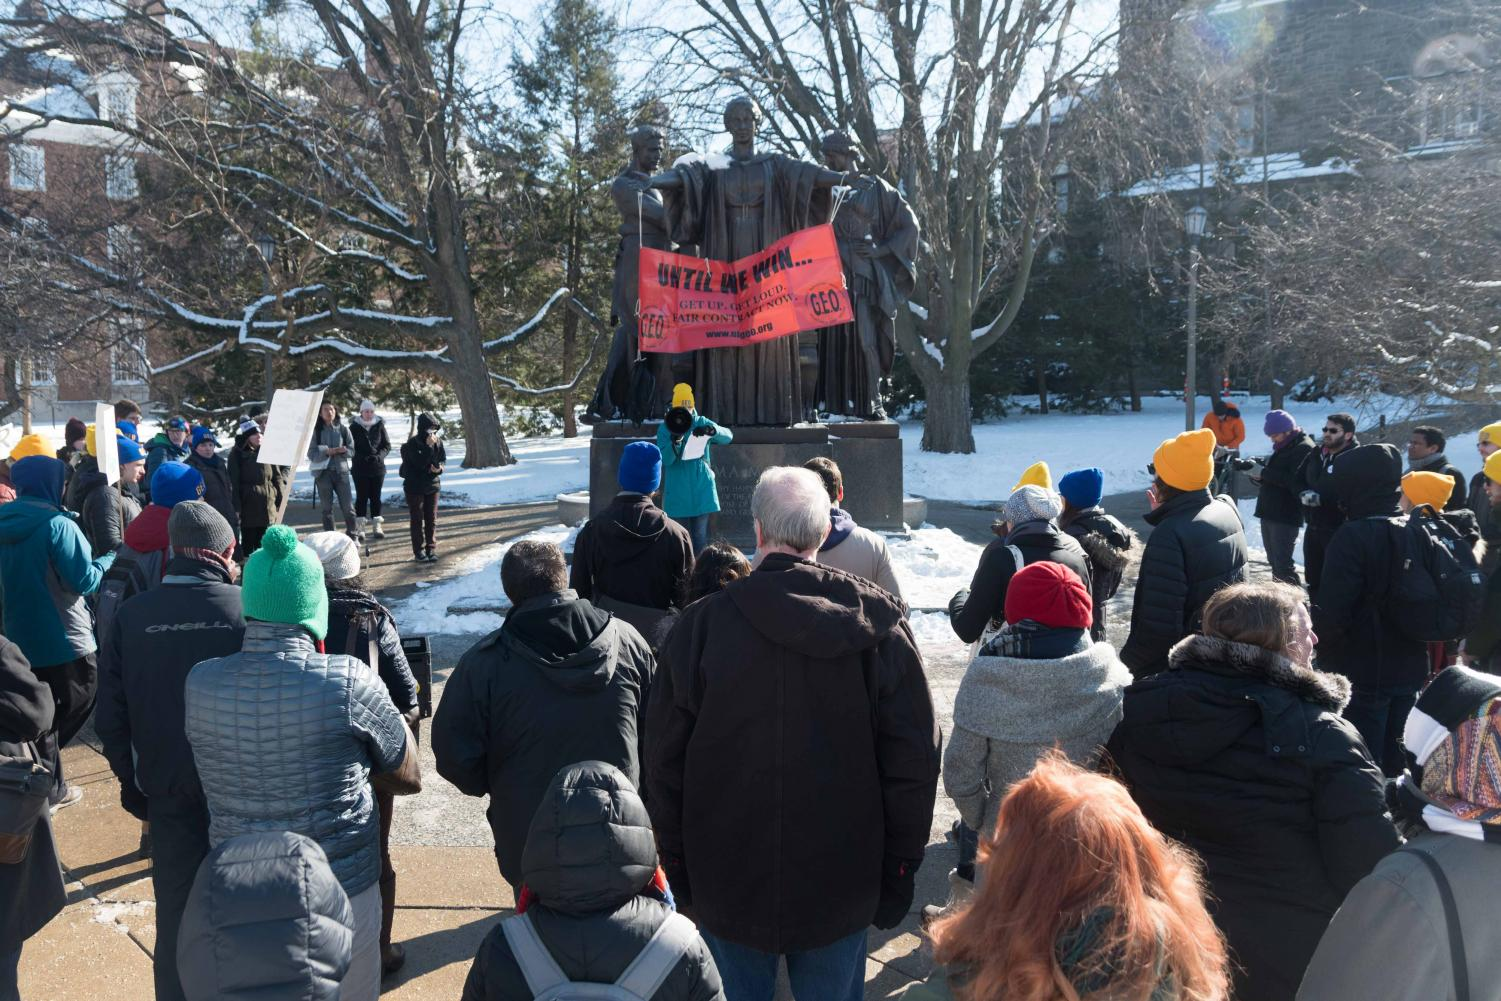 Graduate employees protest at the Alma Mater for a fair contract on Thursday, Jan. 18.